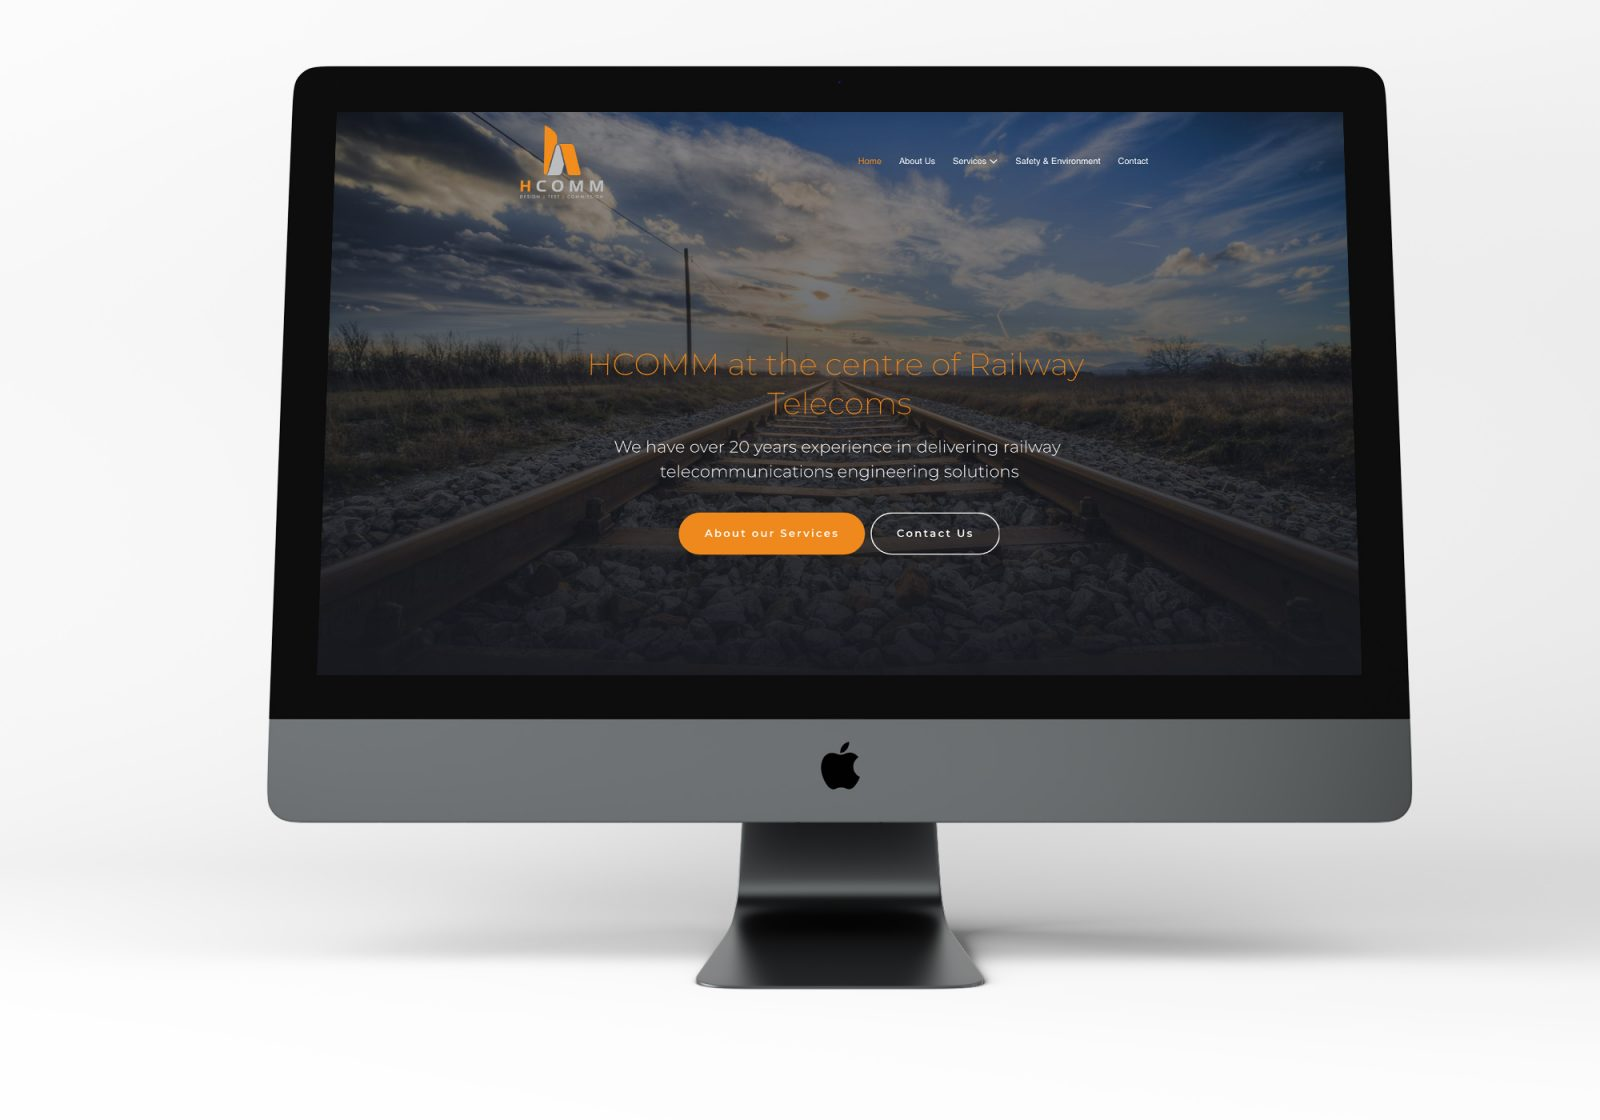 Hcomm's new website on a iMac